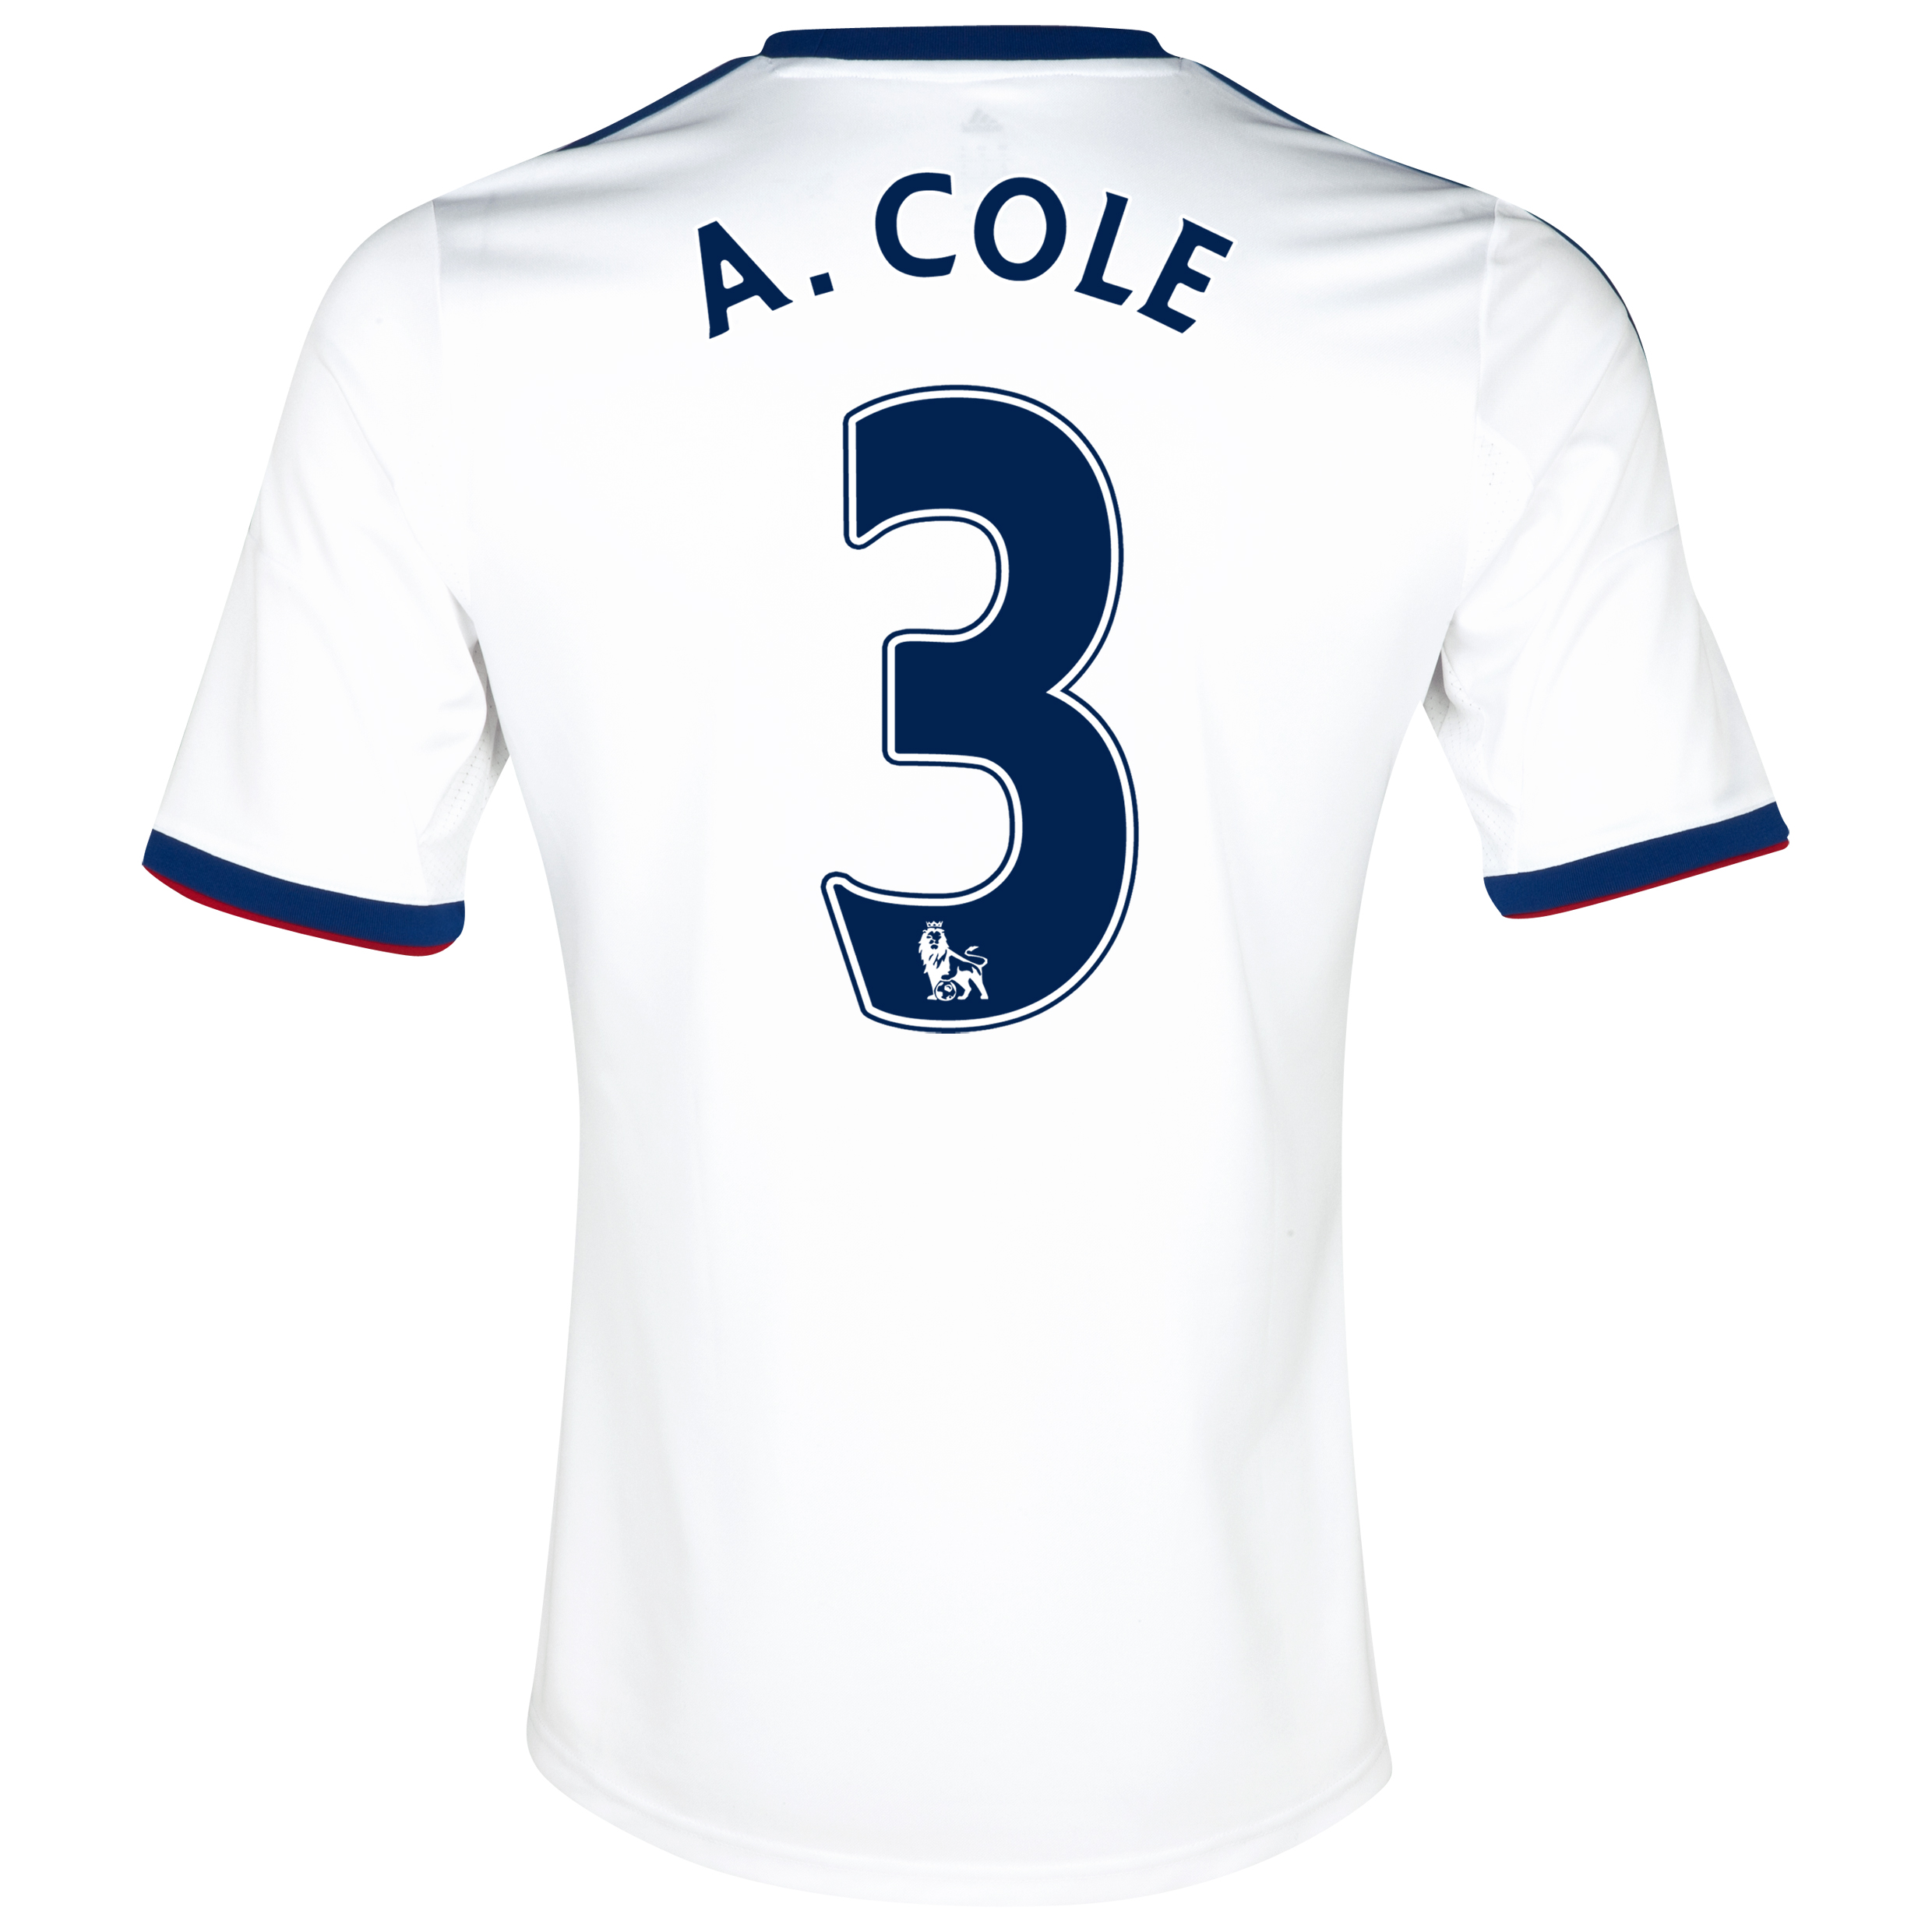 Chelsea Away Shirt 2013/14 with A.Cole 3 printing